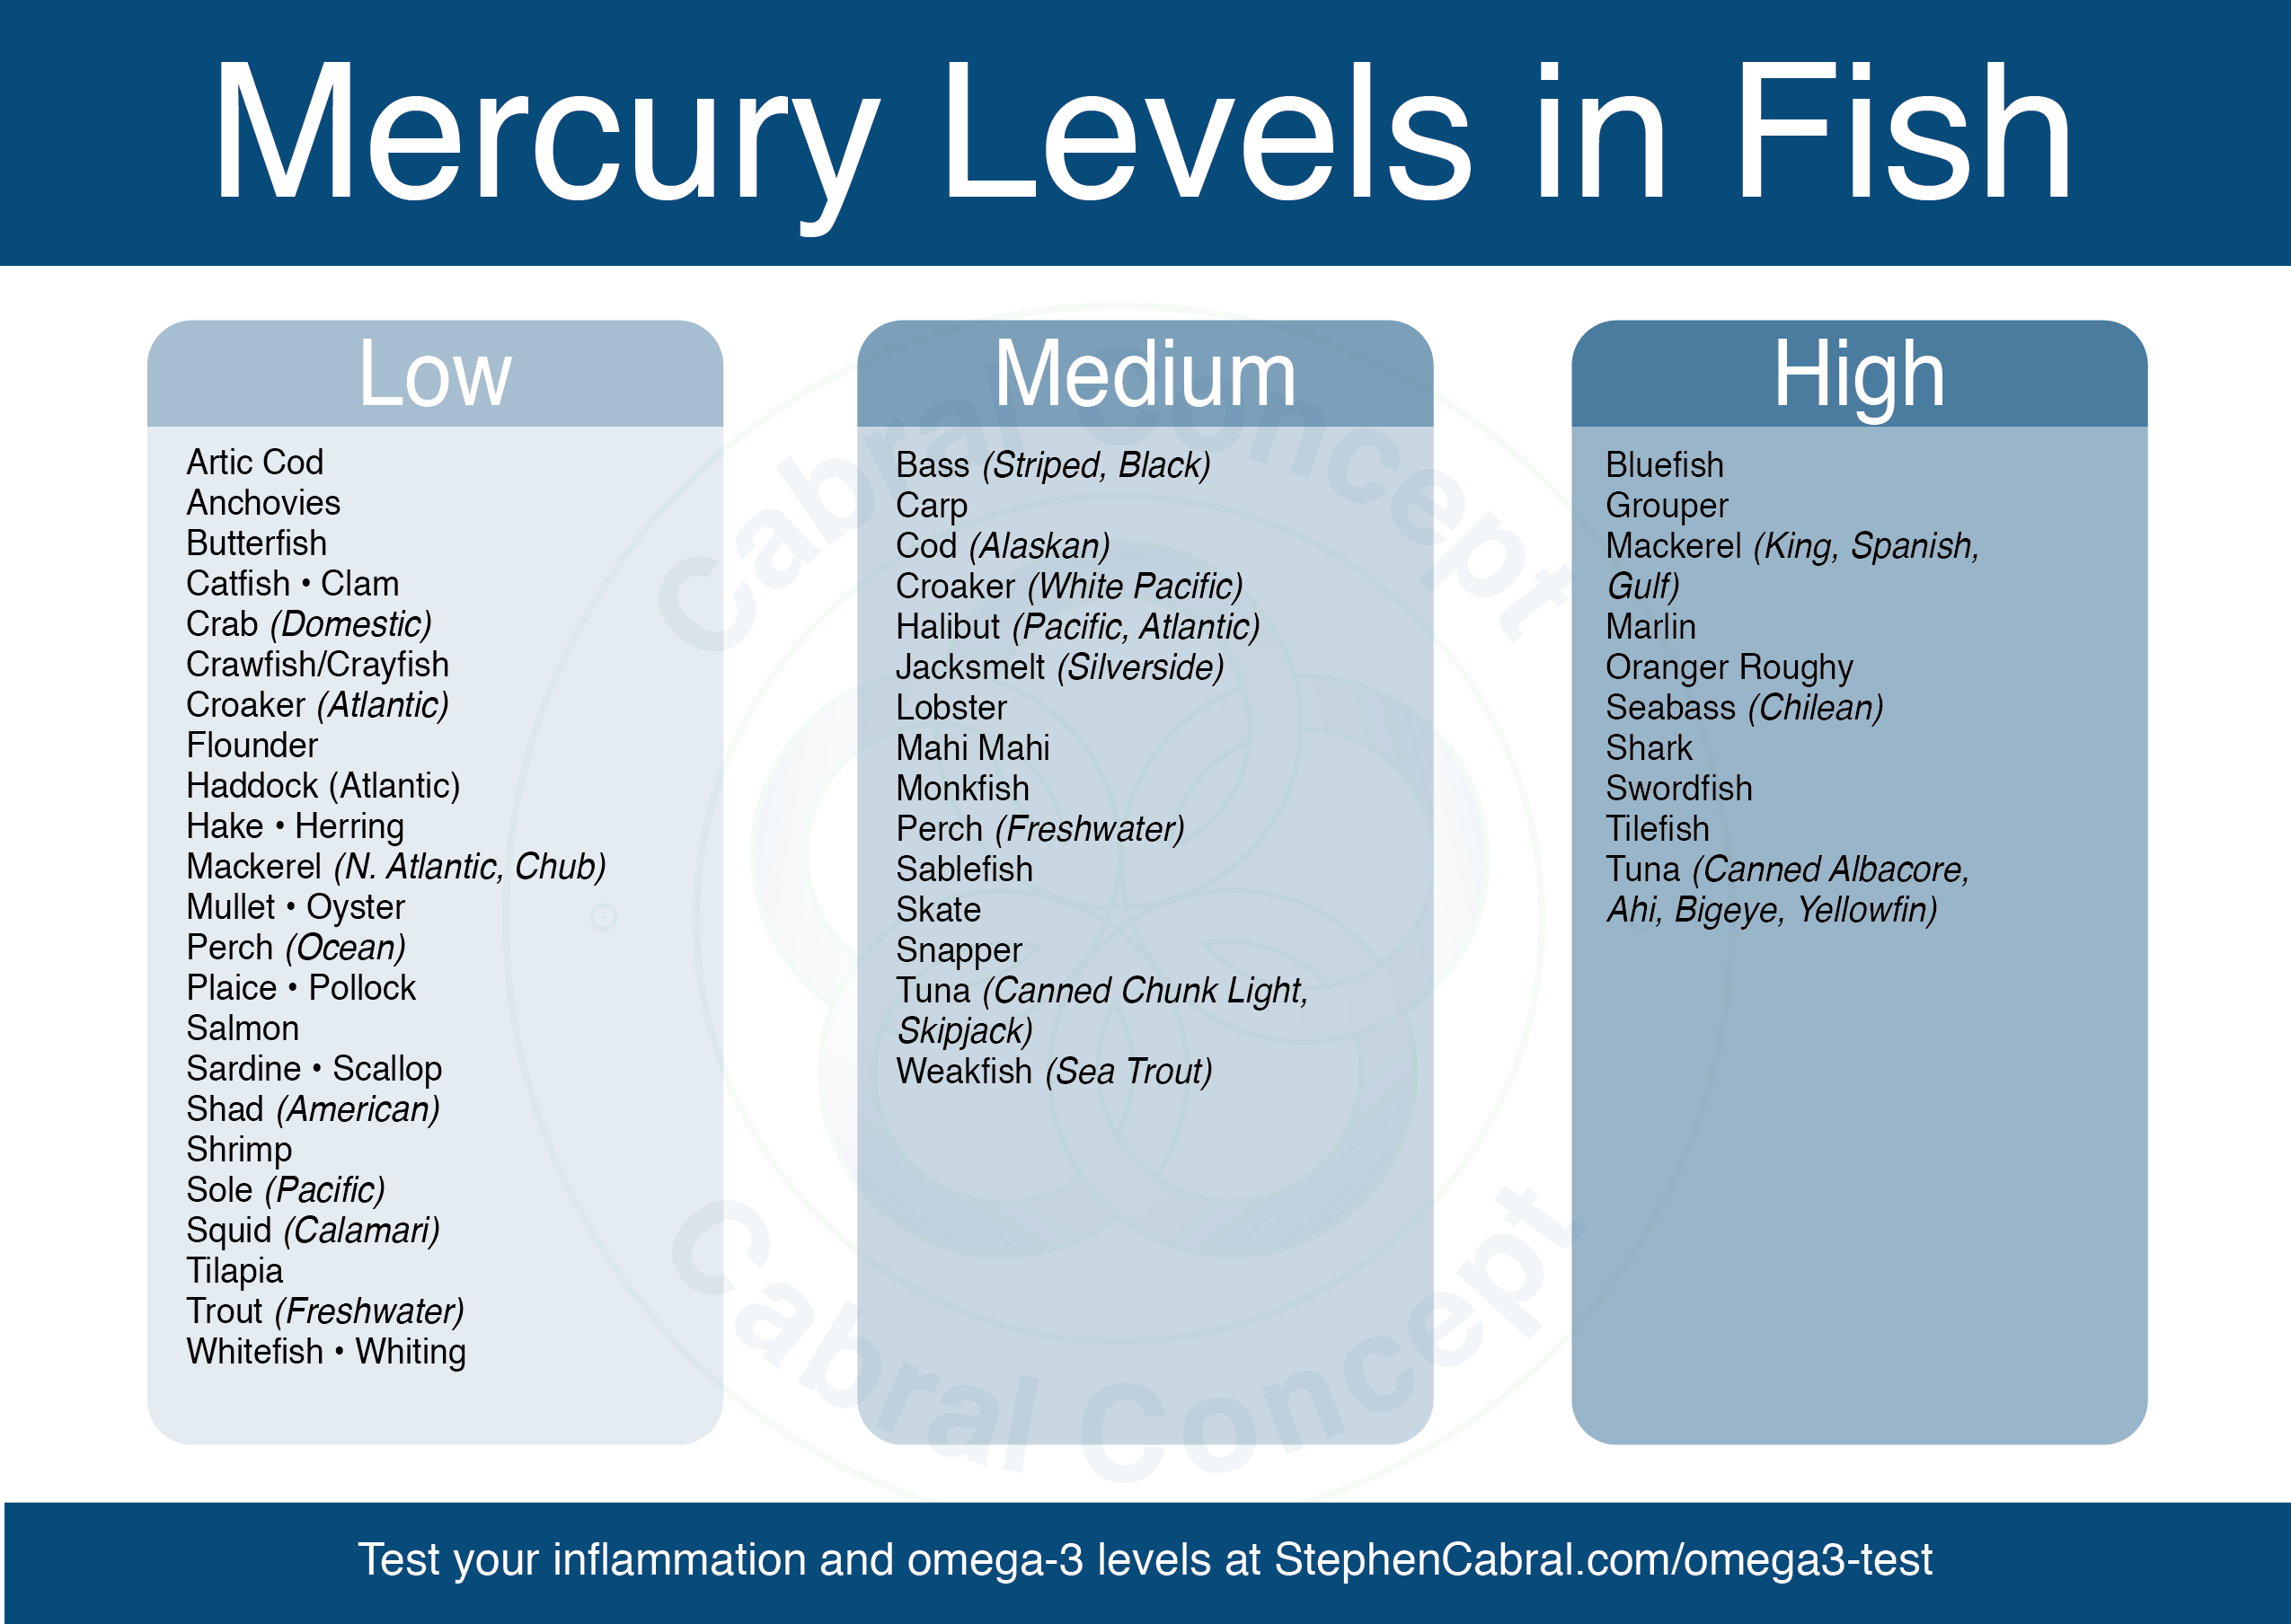 MercuryLevelsInFish-01